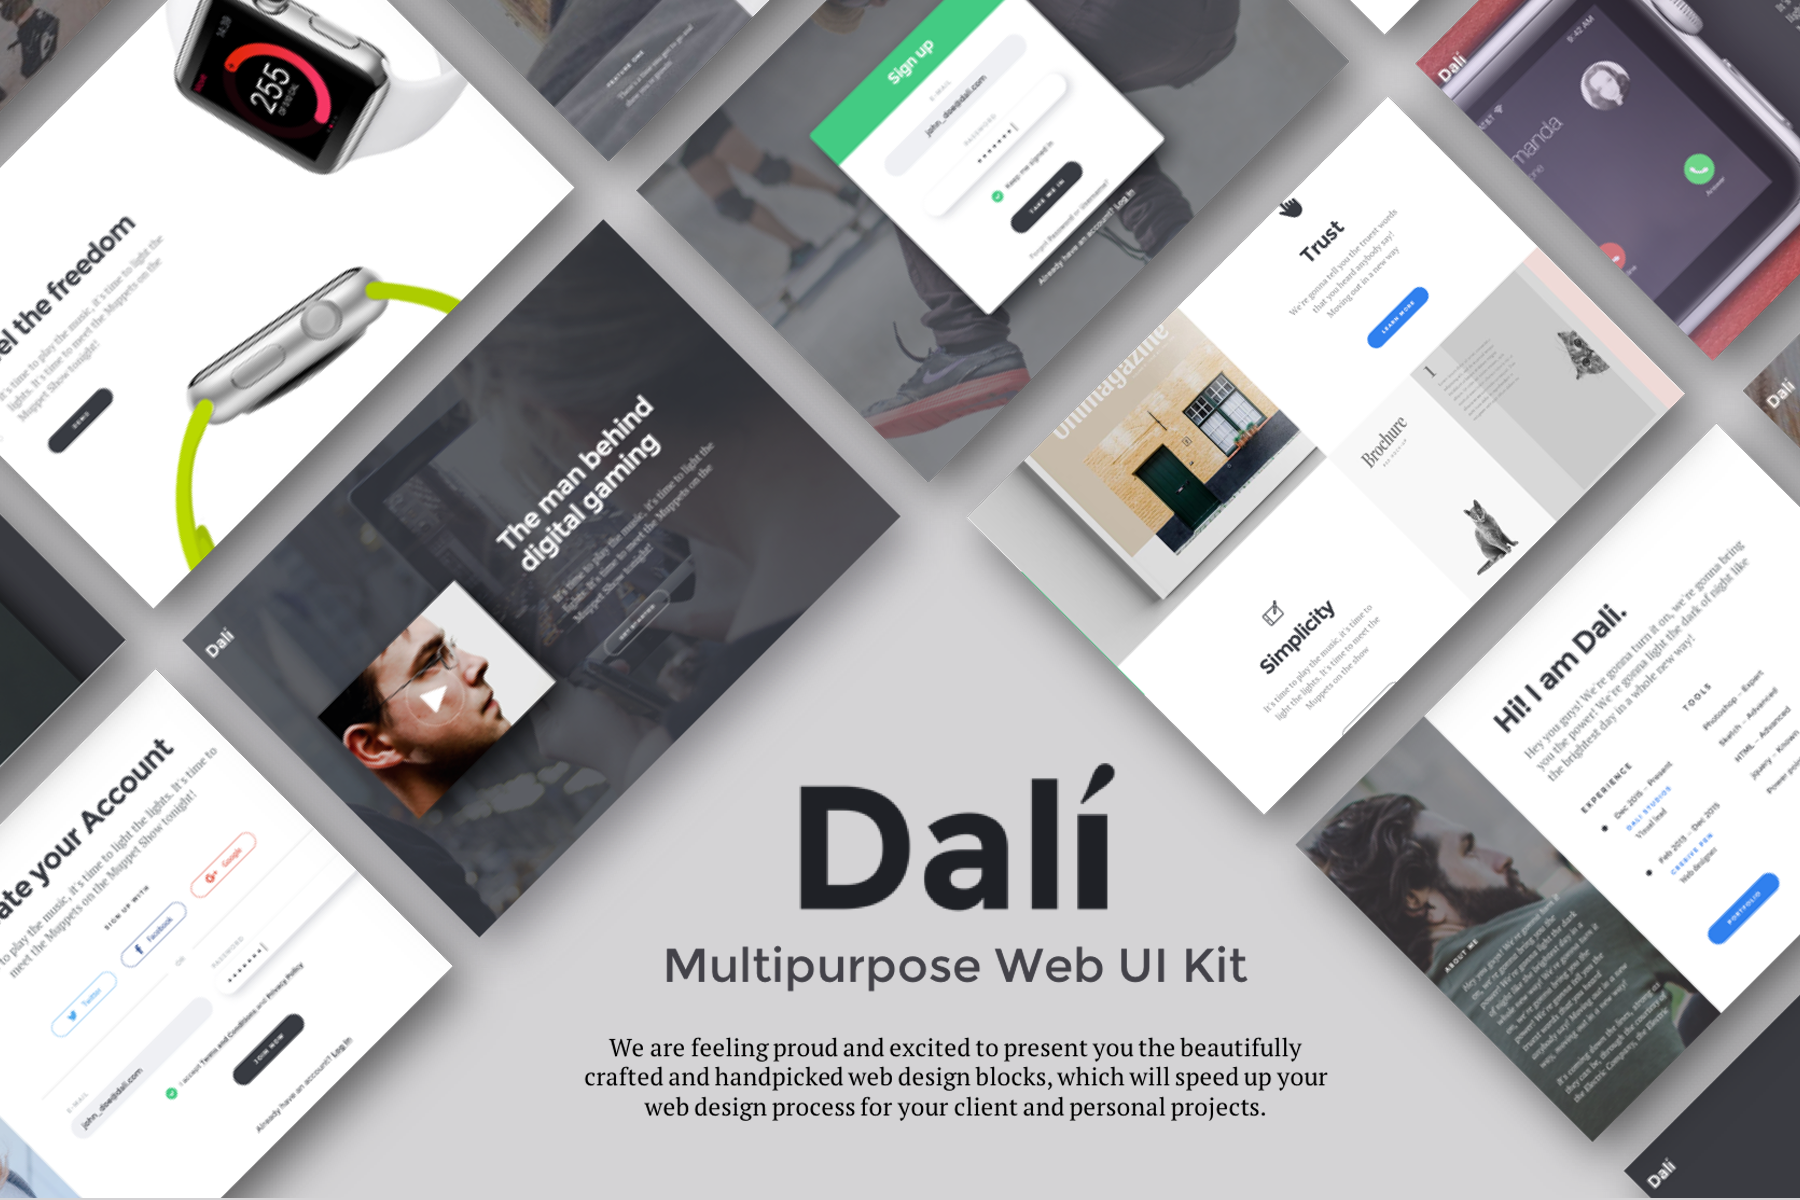 Dali-Multipurpose web ui kit